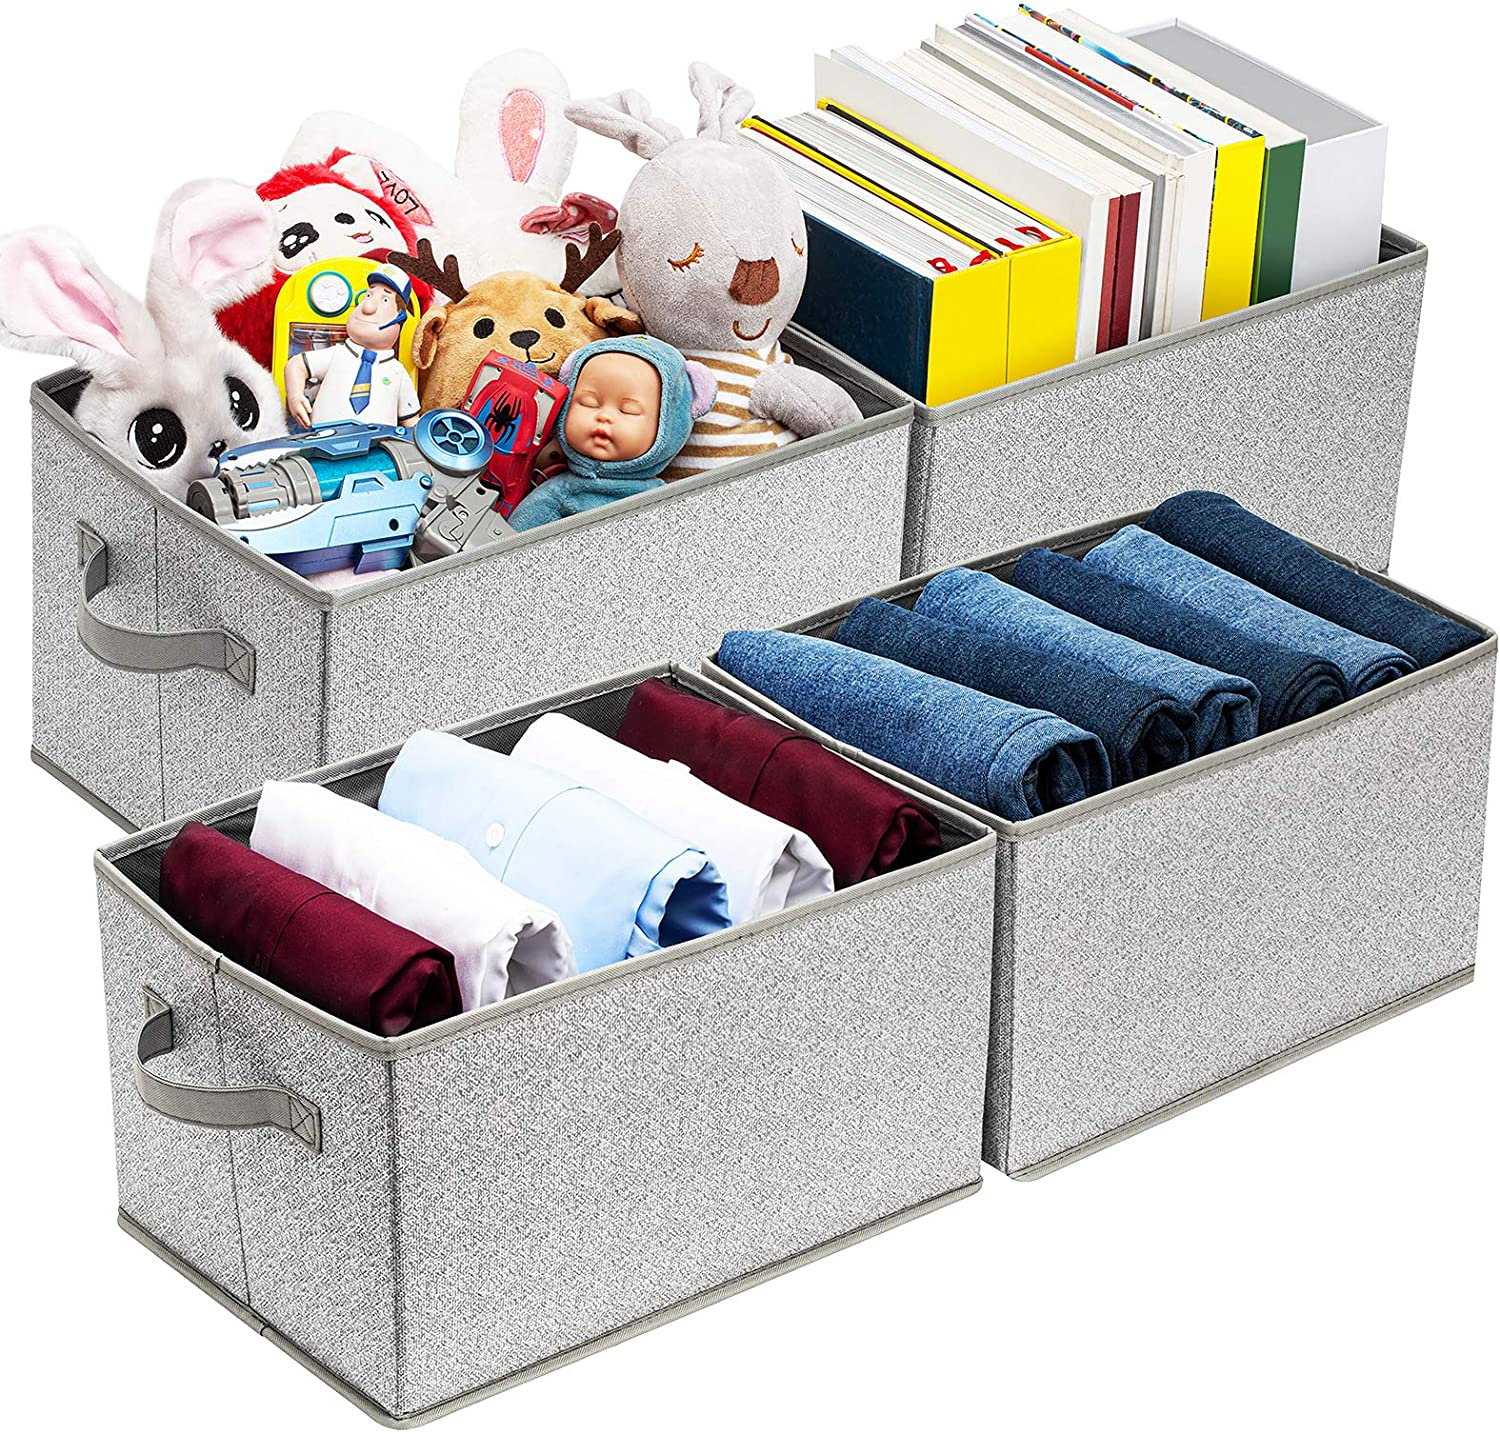 Artsdi Storage Bin for Shelves, Rectangle Storage Box, Fabric Storage Baskets Containers, Closet Organizer Shelf Cube Box with Handle Home Office, Extra Large, Gray, 4 Pack